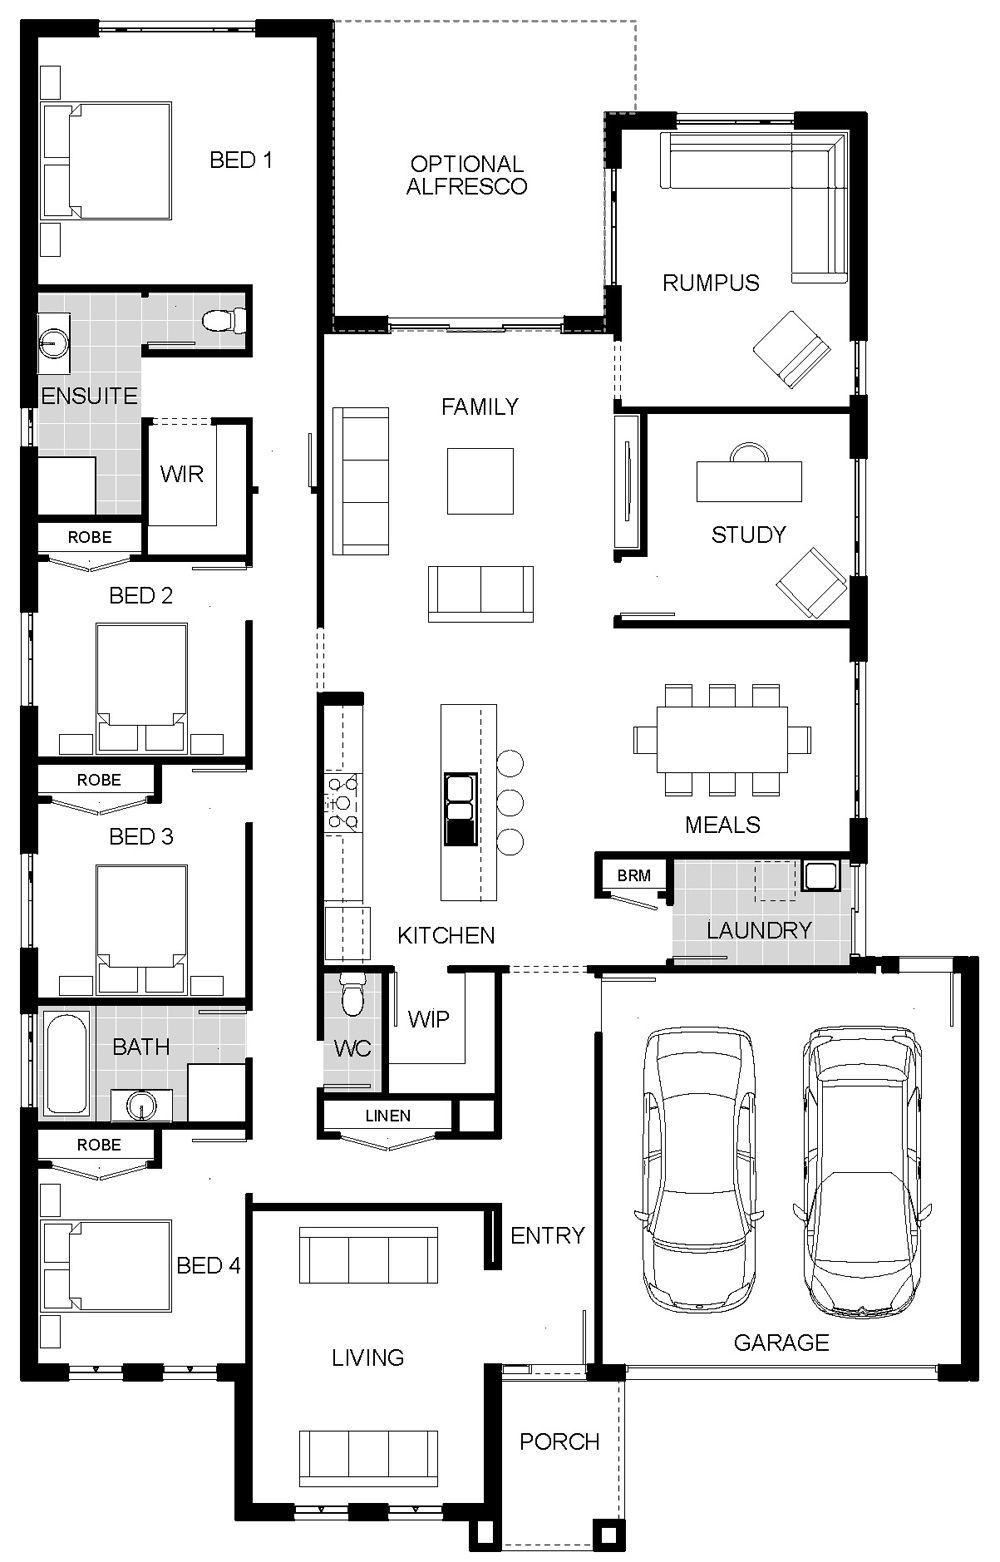 Floorplan Arcadia My Edit I Really Like The Bedroom Set Up But Not Sold On The Living Room Areas Floor Plan Design Floor Plan Creator House Floor Plans